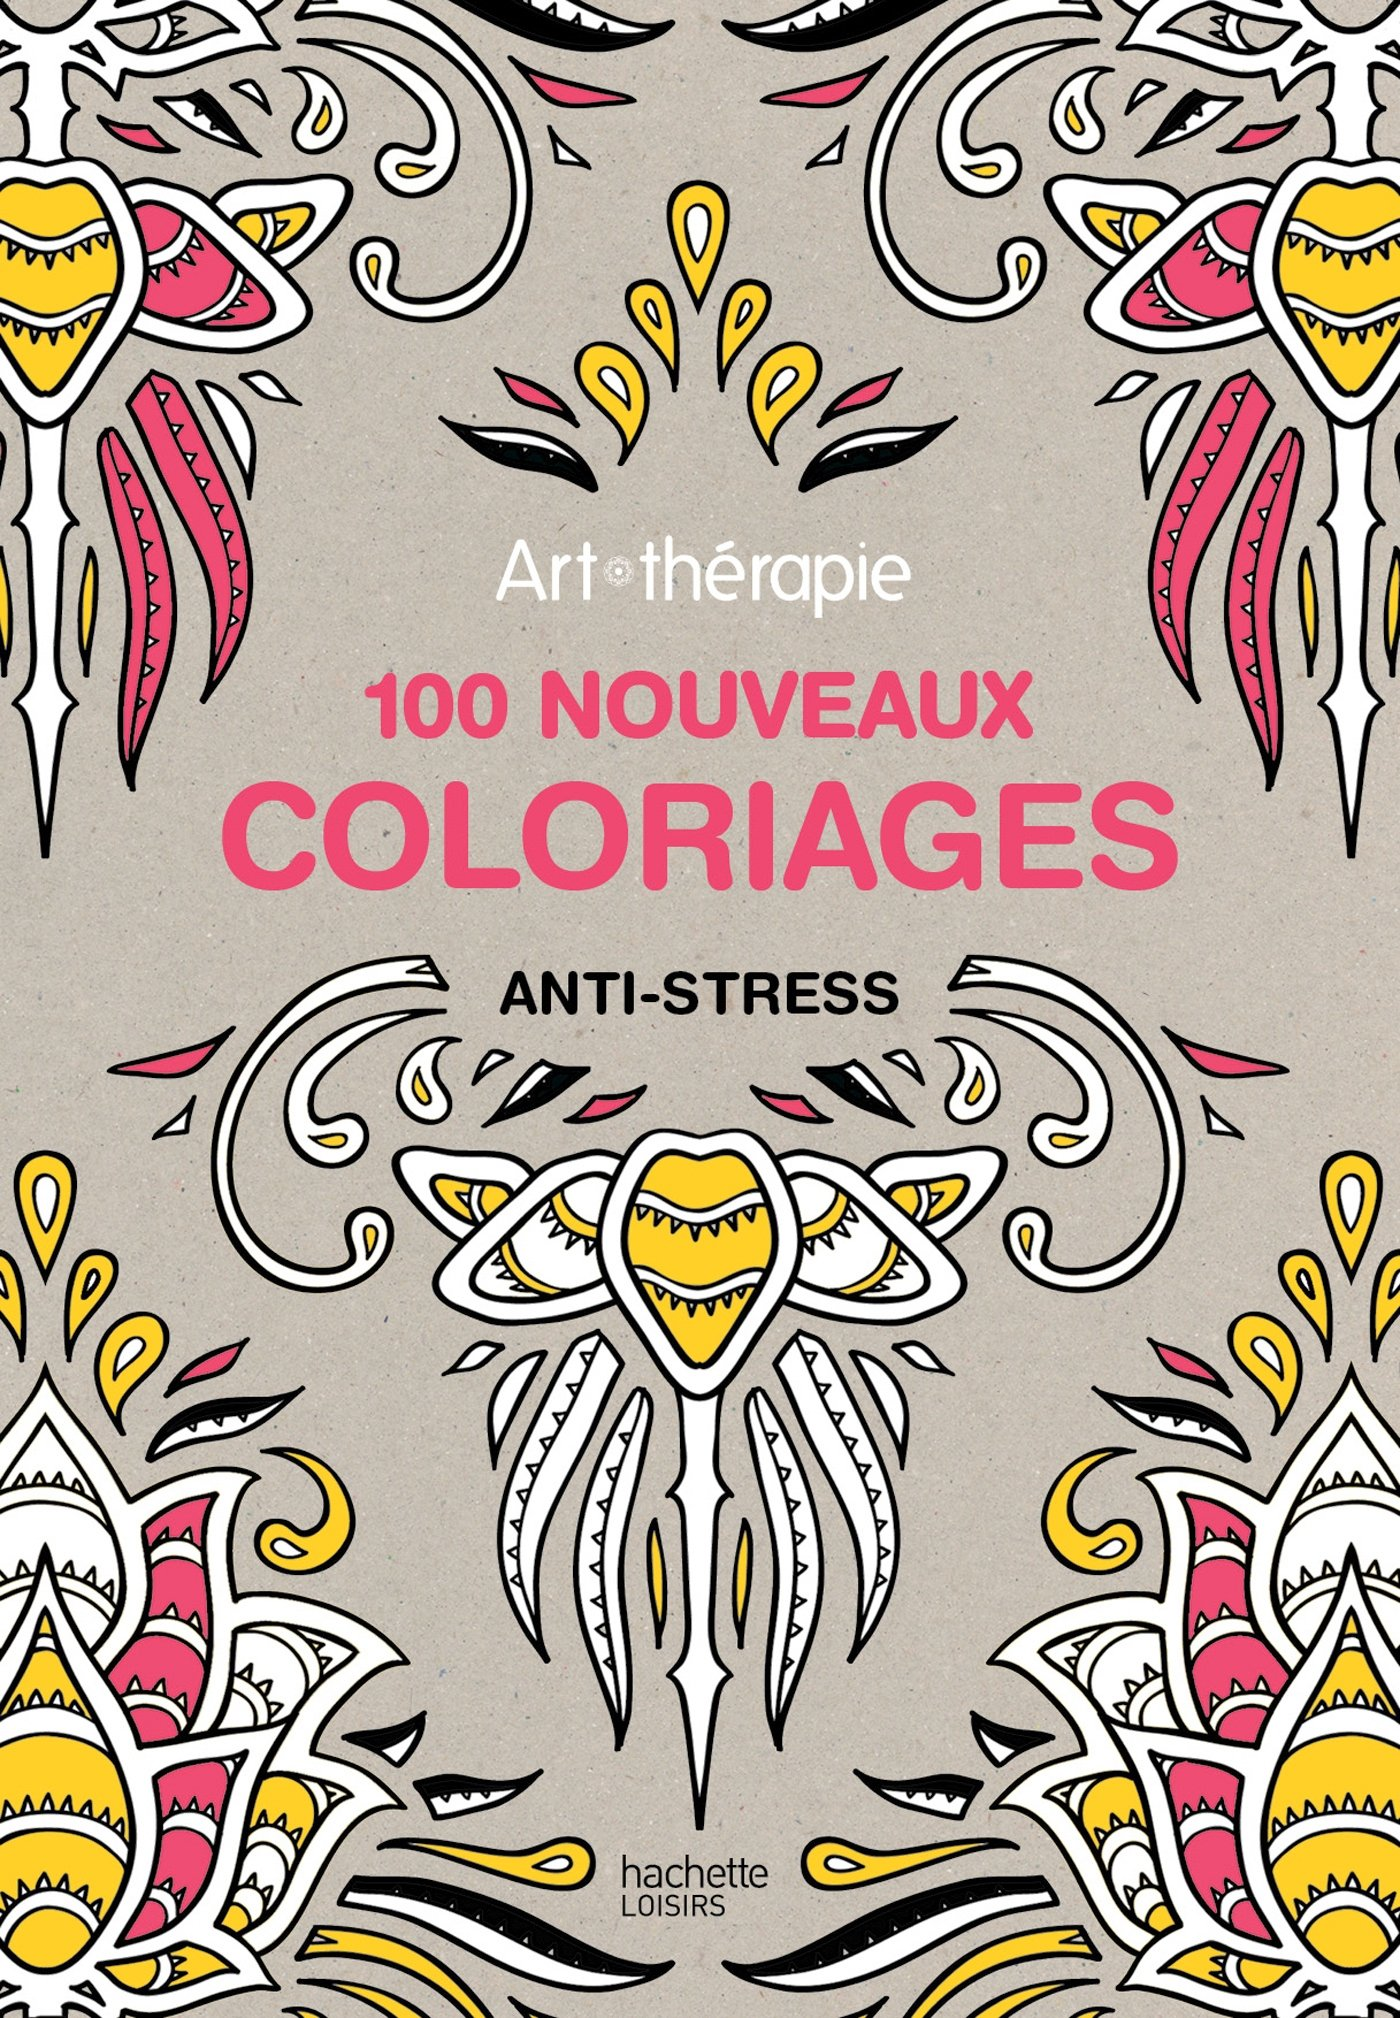 Art Therapie 100 Nouveaux Coloriages Anti Stress French Edition